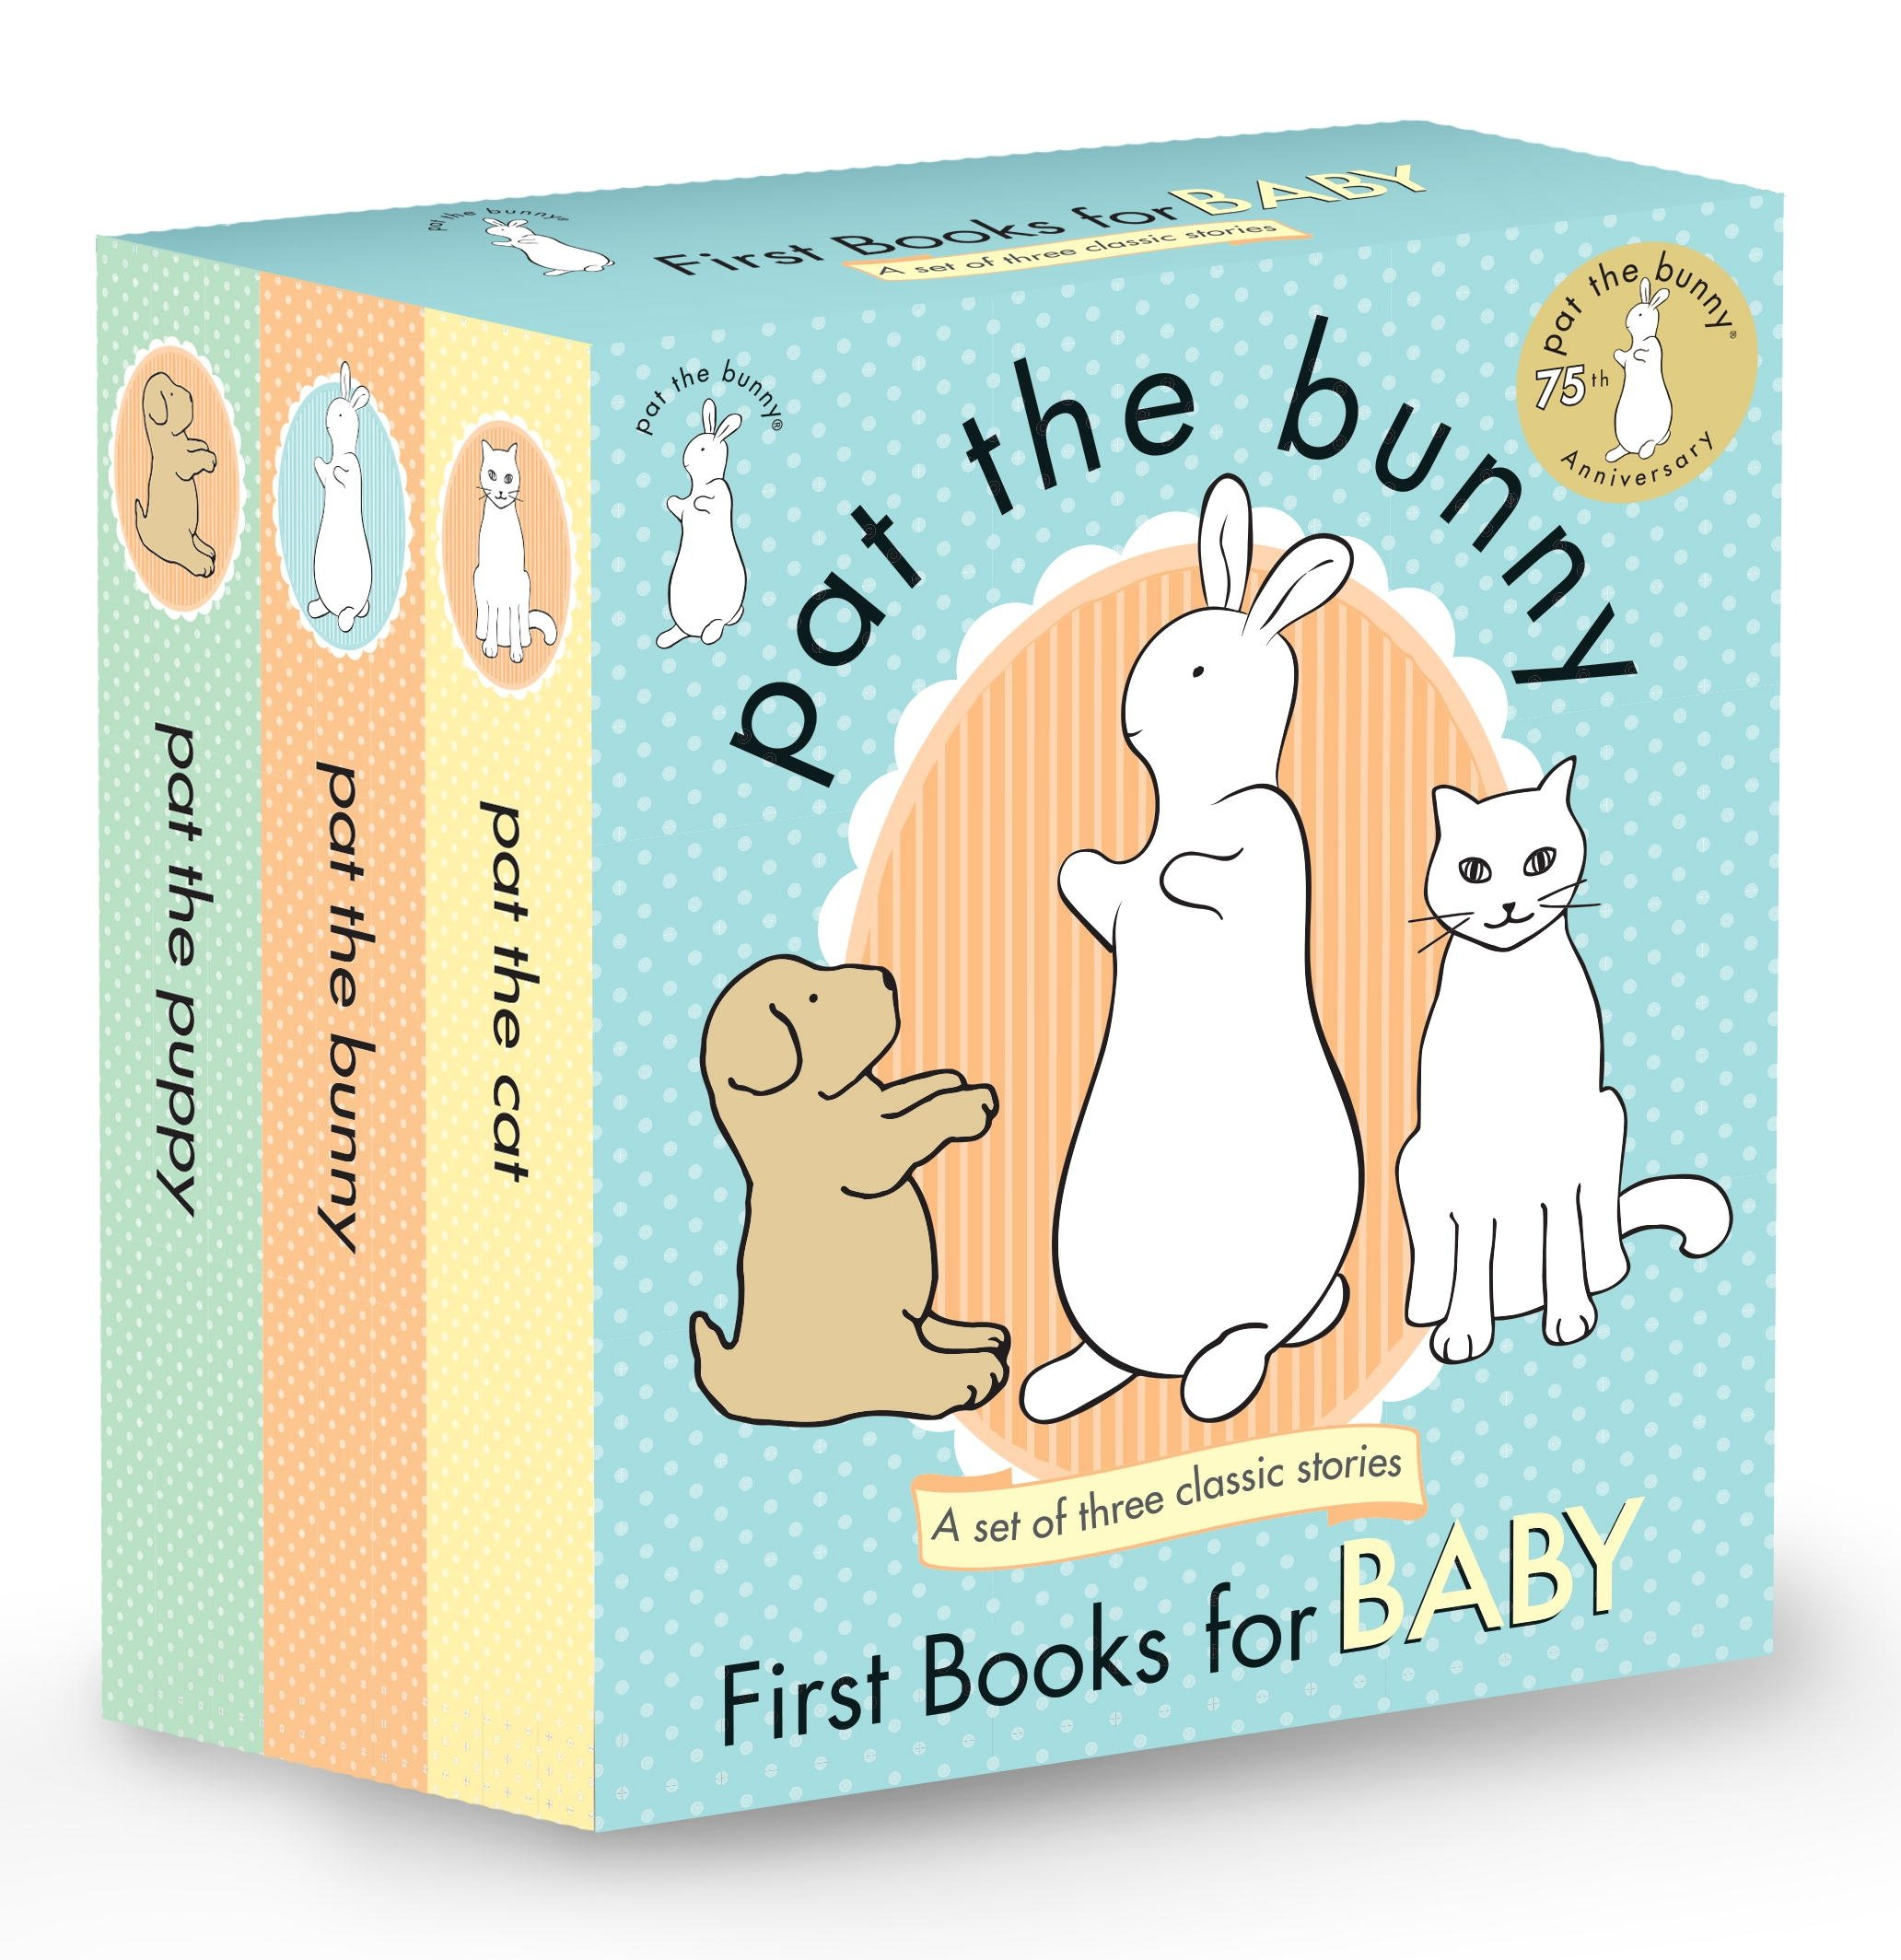 Pat the Bunny: First Books for Baby (Pat the Bunny) (Touch-and-Feel) by Golden Books (Image #2)